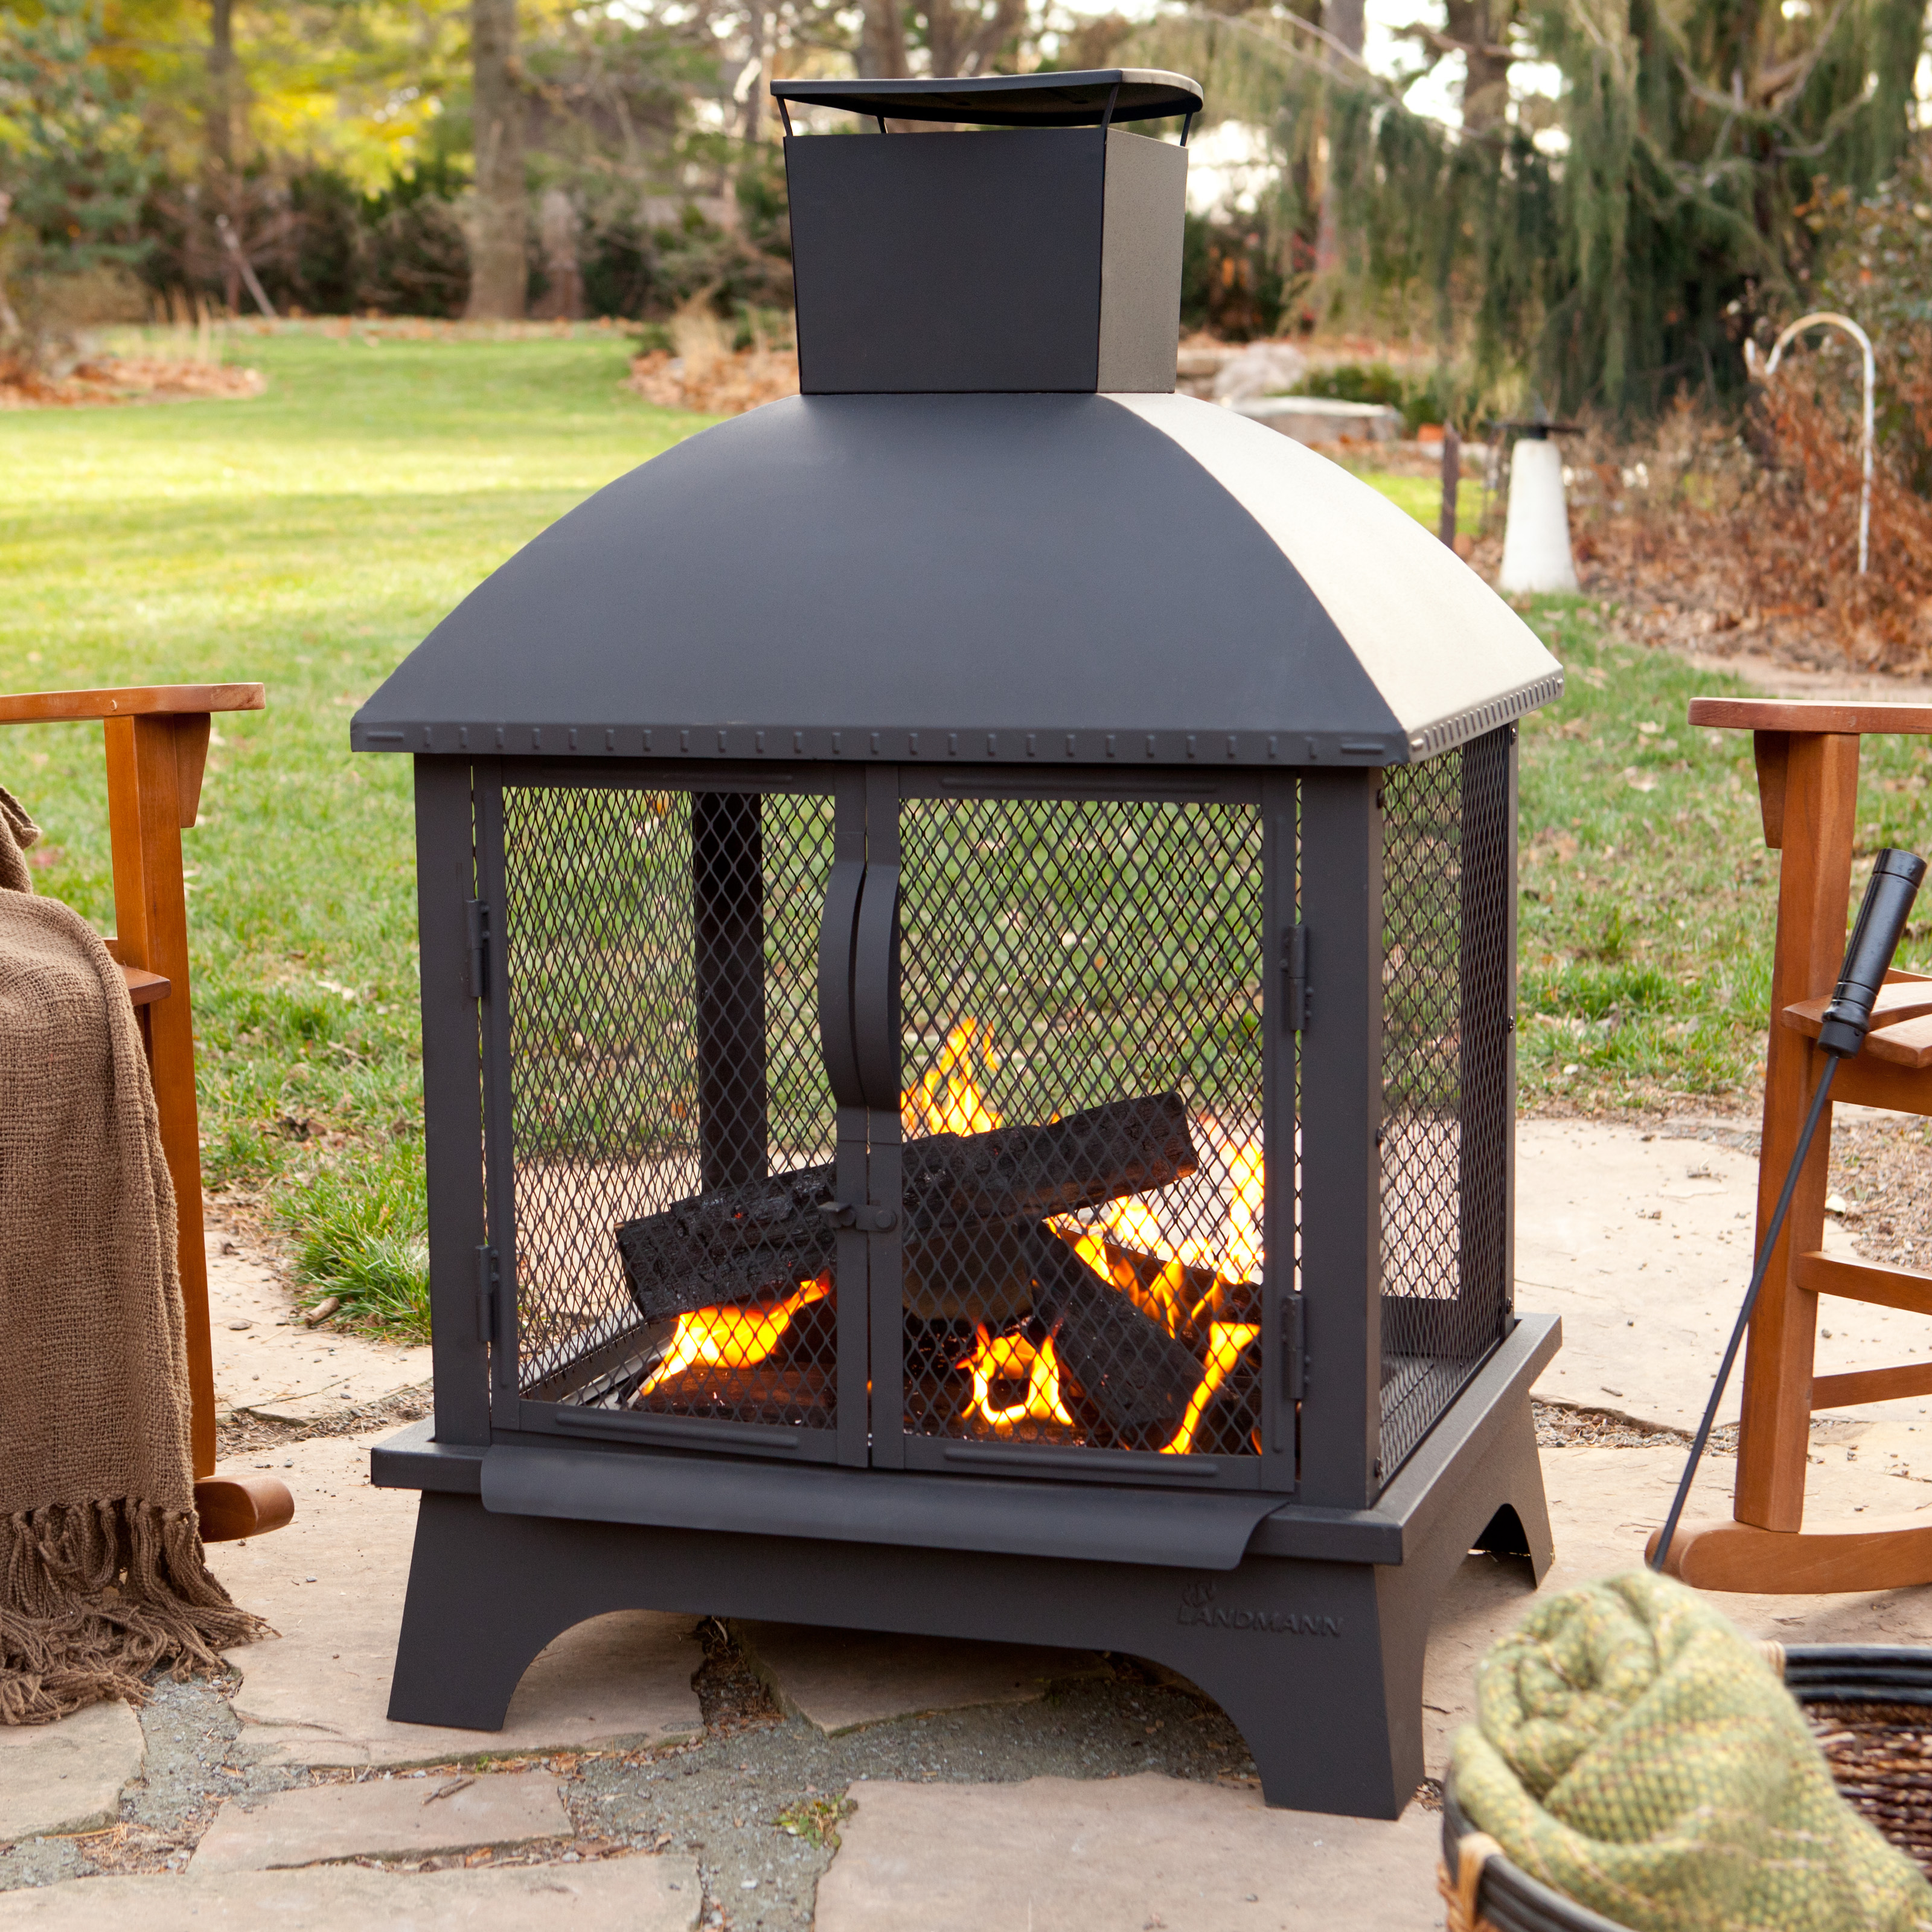 Landmann Redford Fireplace Fireplaces Chimineas At Hayneedle